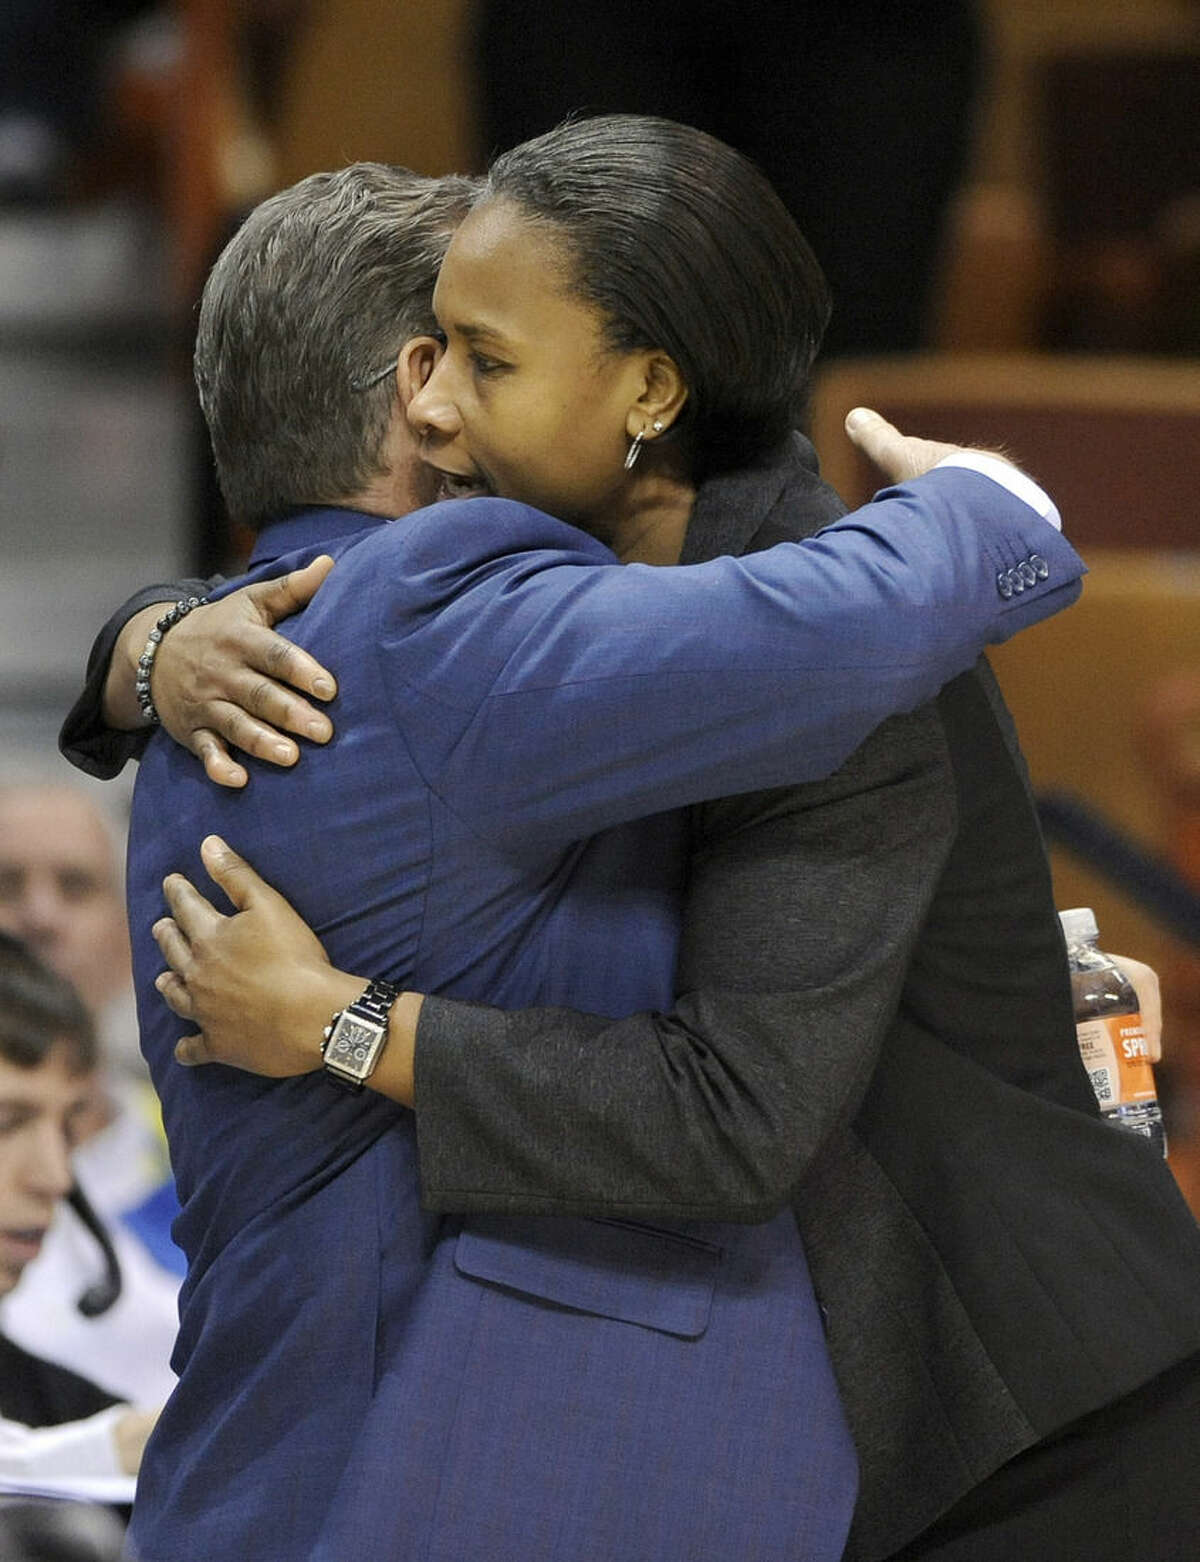 Connecticut head coach Geno Auriemma and Cincinnati head coach Jamelle Elliott hug after Connecticut's 93-34 victory in an NCAA college basketball game in the quarterfinals of the American Athletic Conference tournament in Uncasville, Conn., on Saturday, March 7, 2015. (AP Photo/Fred Beckham)